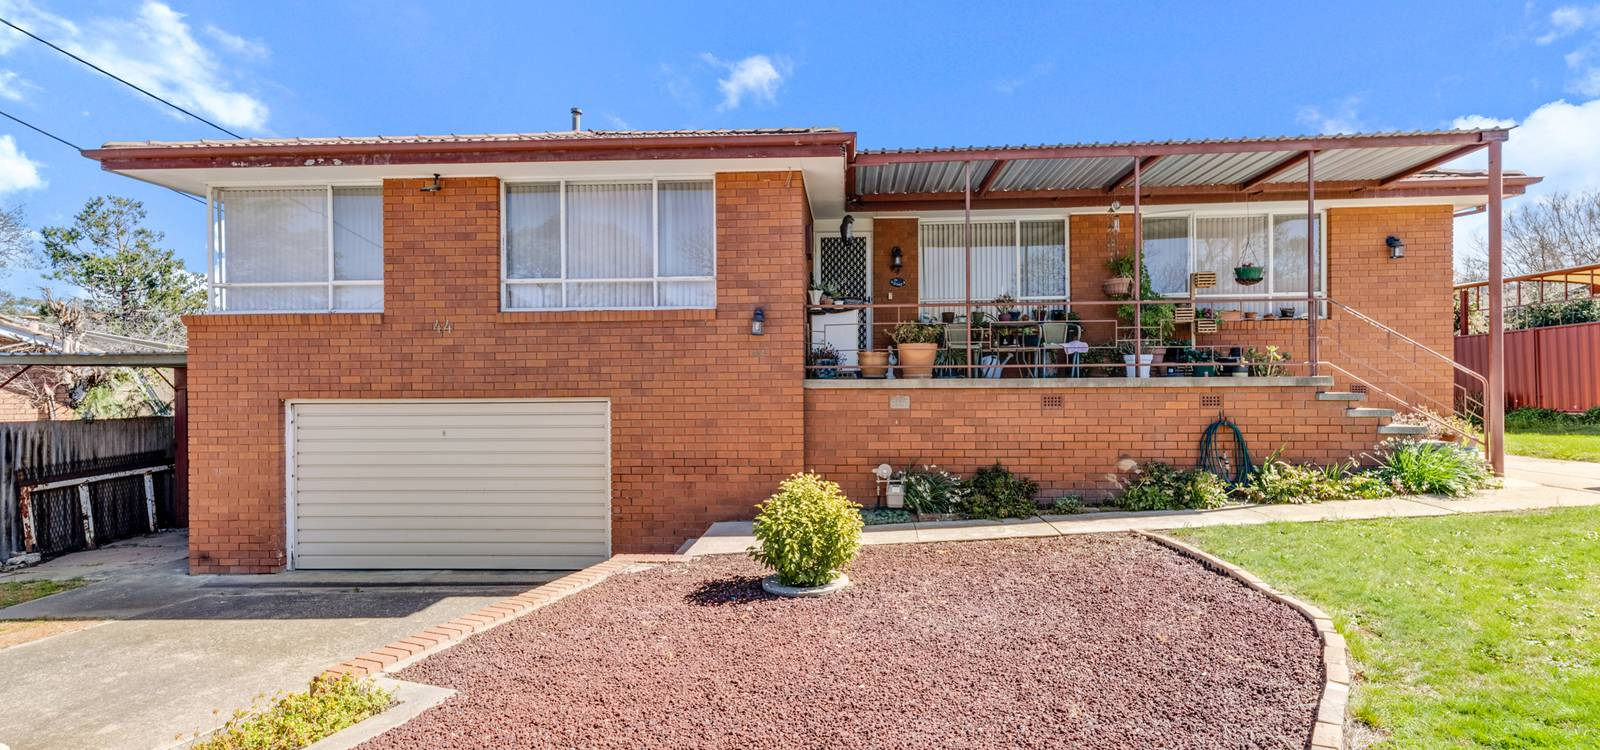 44 Roseworthy Crescent FARRER, ACT 2607 - photo 1